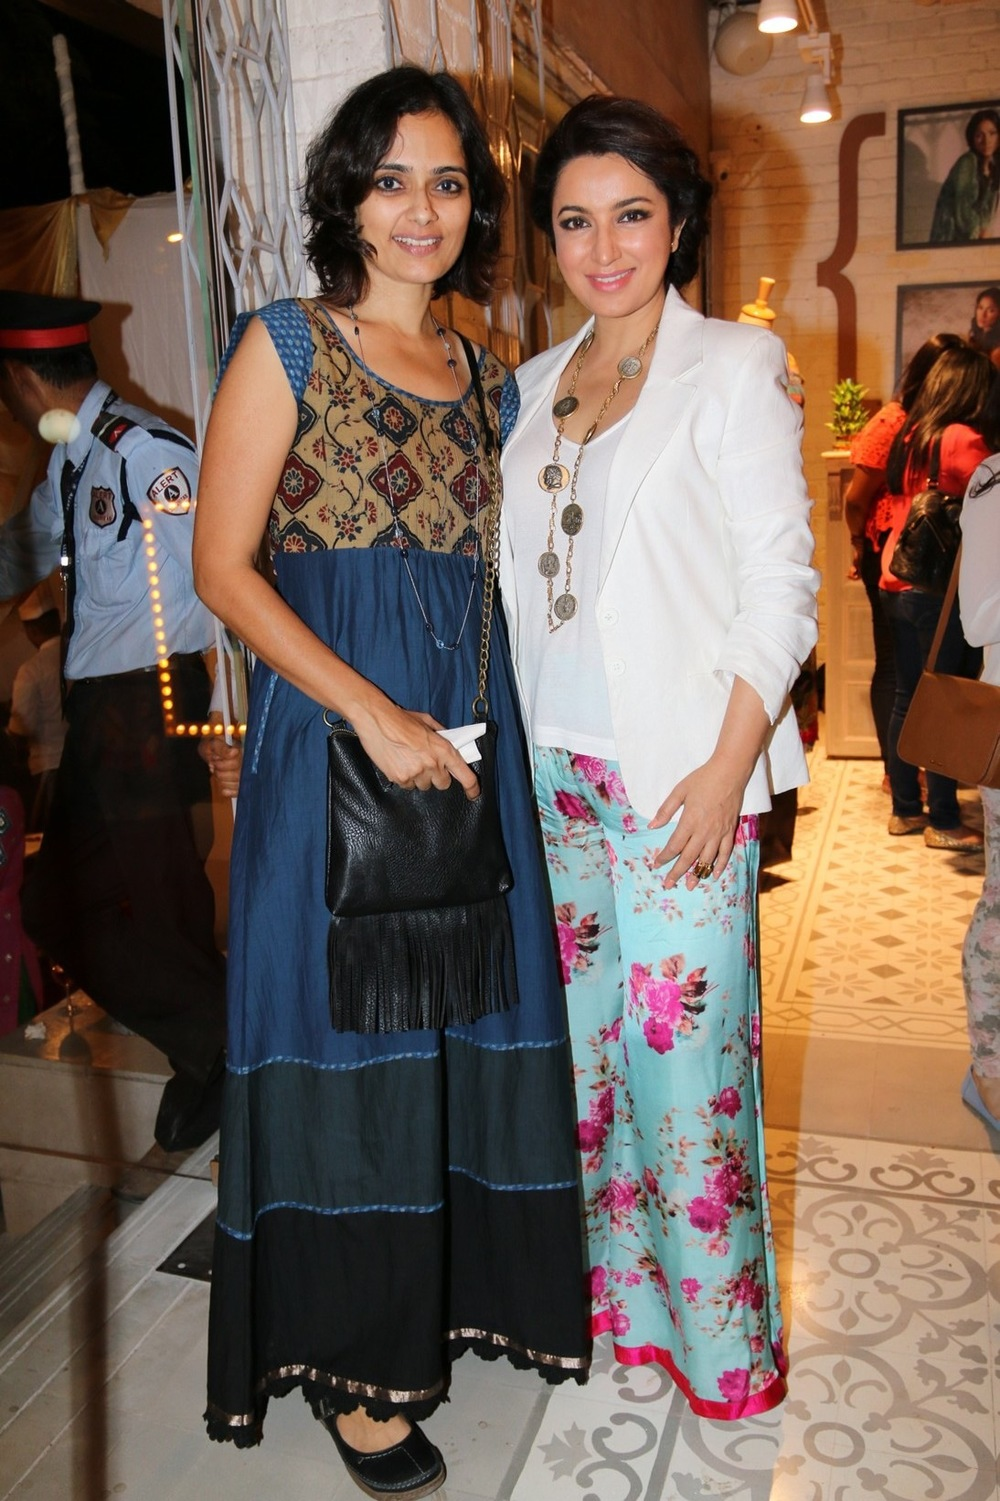 Priyadarshini Rao and Tisca Chopra.